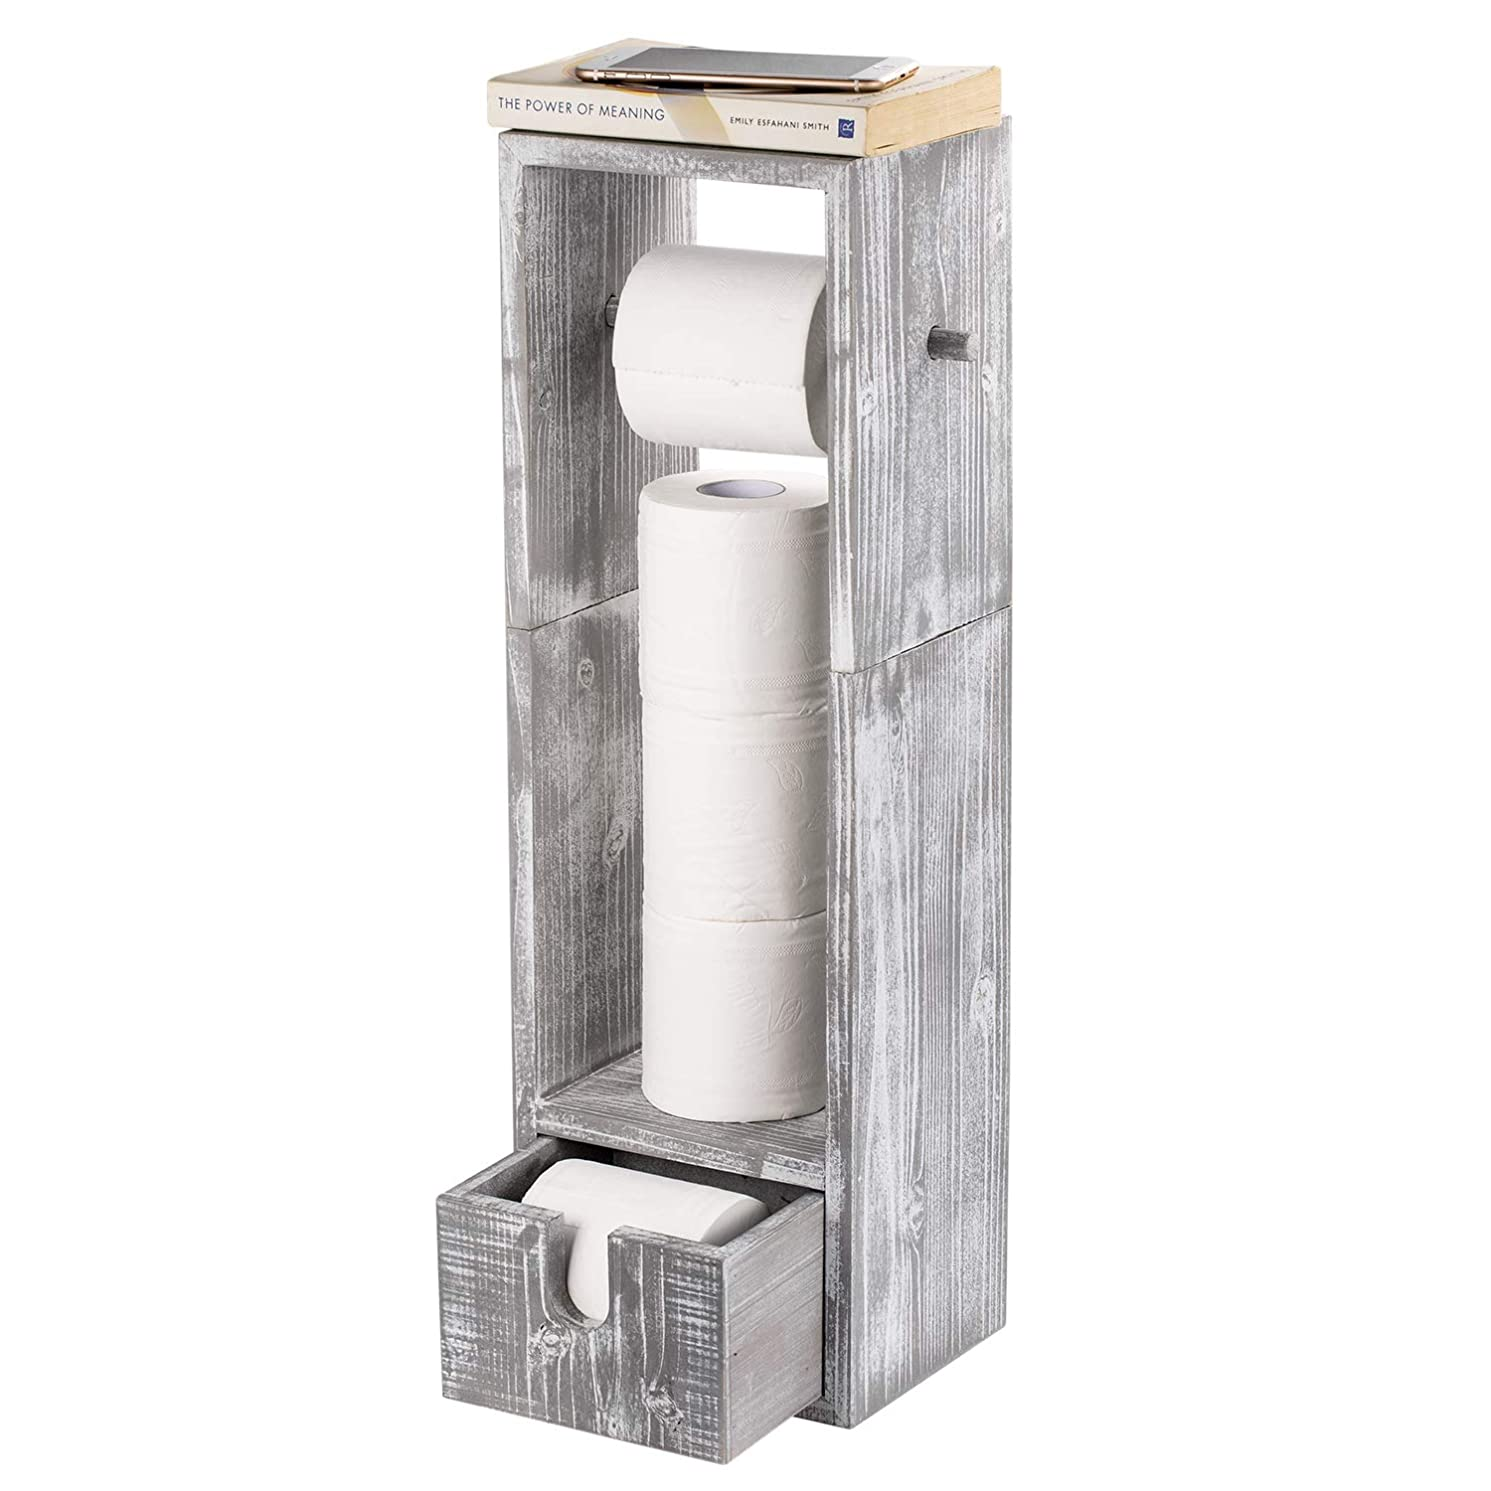 NEX Toilet Paper Holder, Real Wood Bathroom Toilet Tissue Paper Roll Holder Stand and Dispenser with Storage